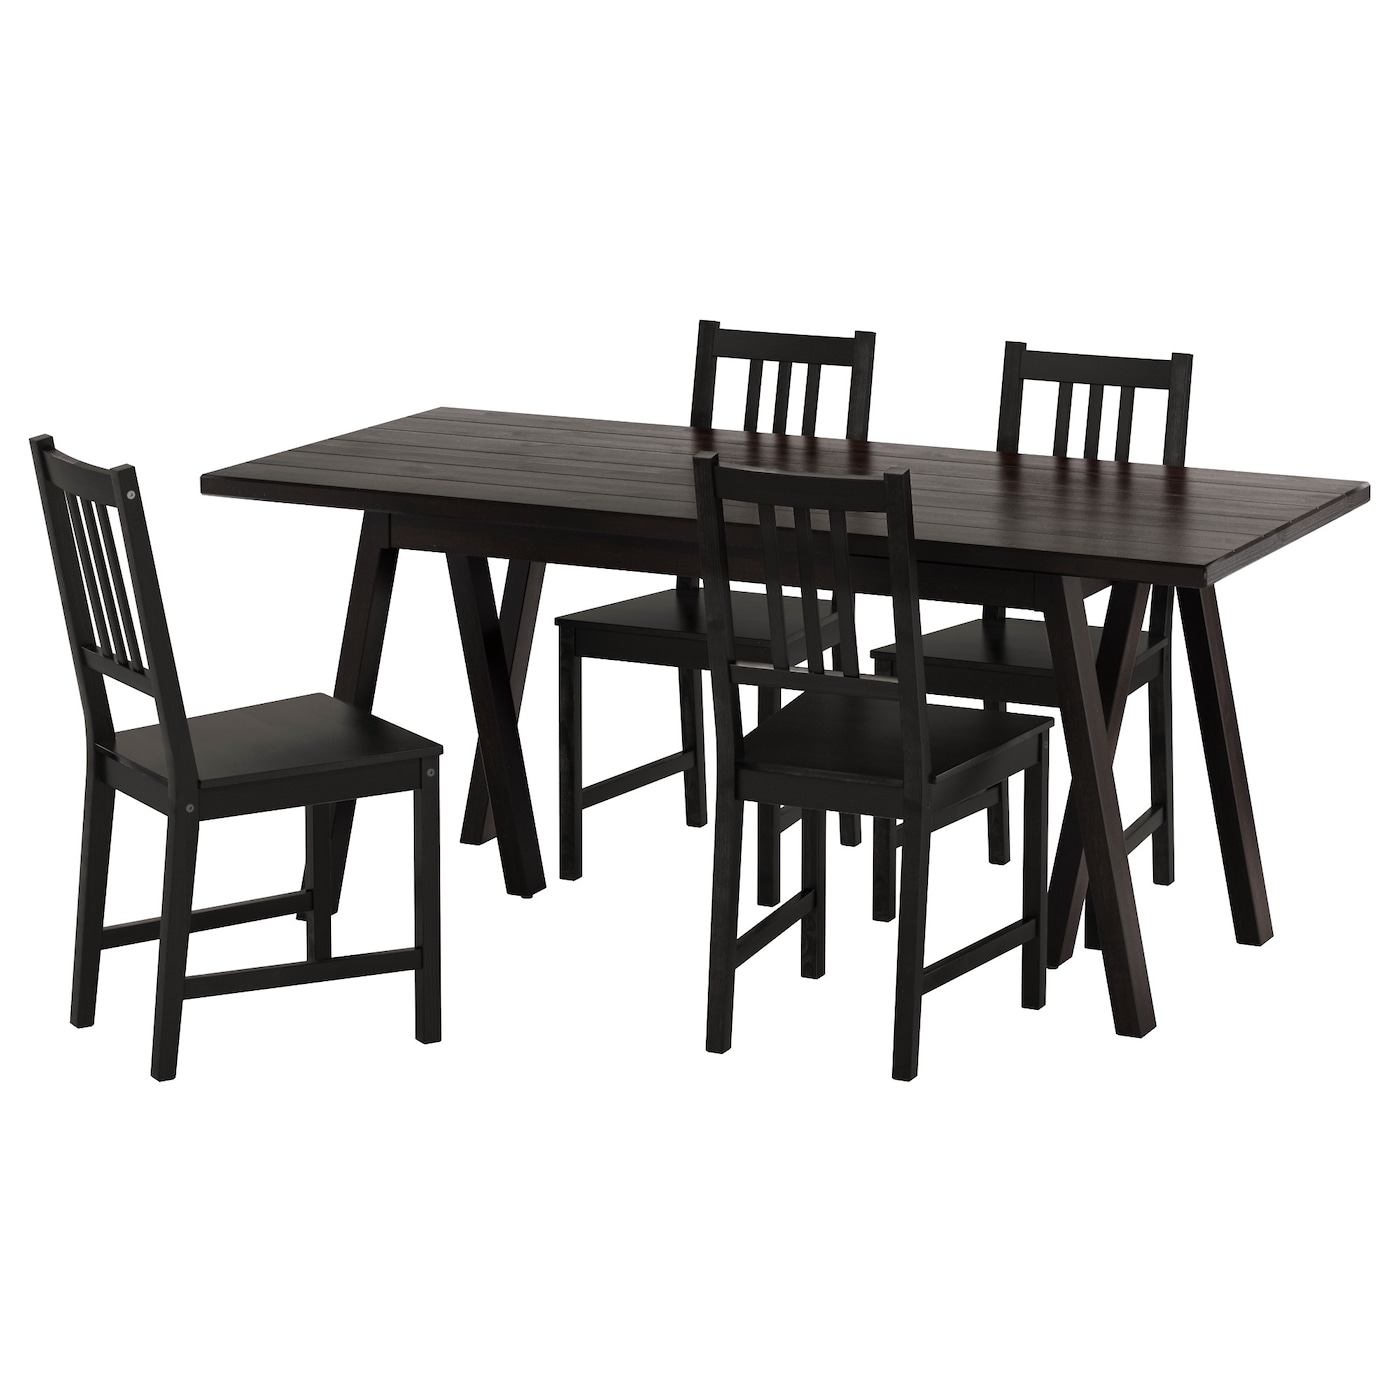 STEFANRYGGESTADGREBBESTAD Table and 4 chairs Blackbrown black